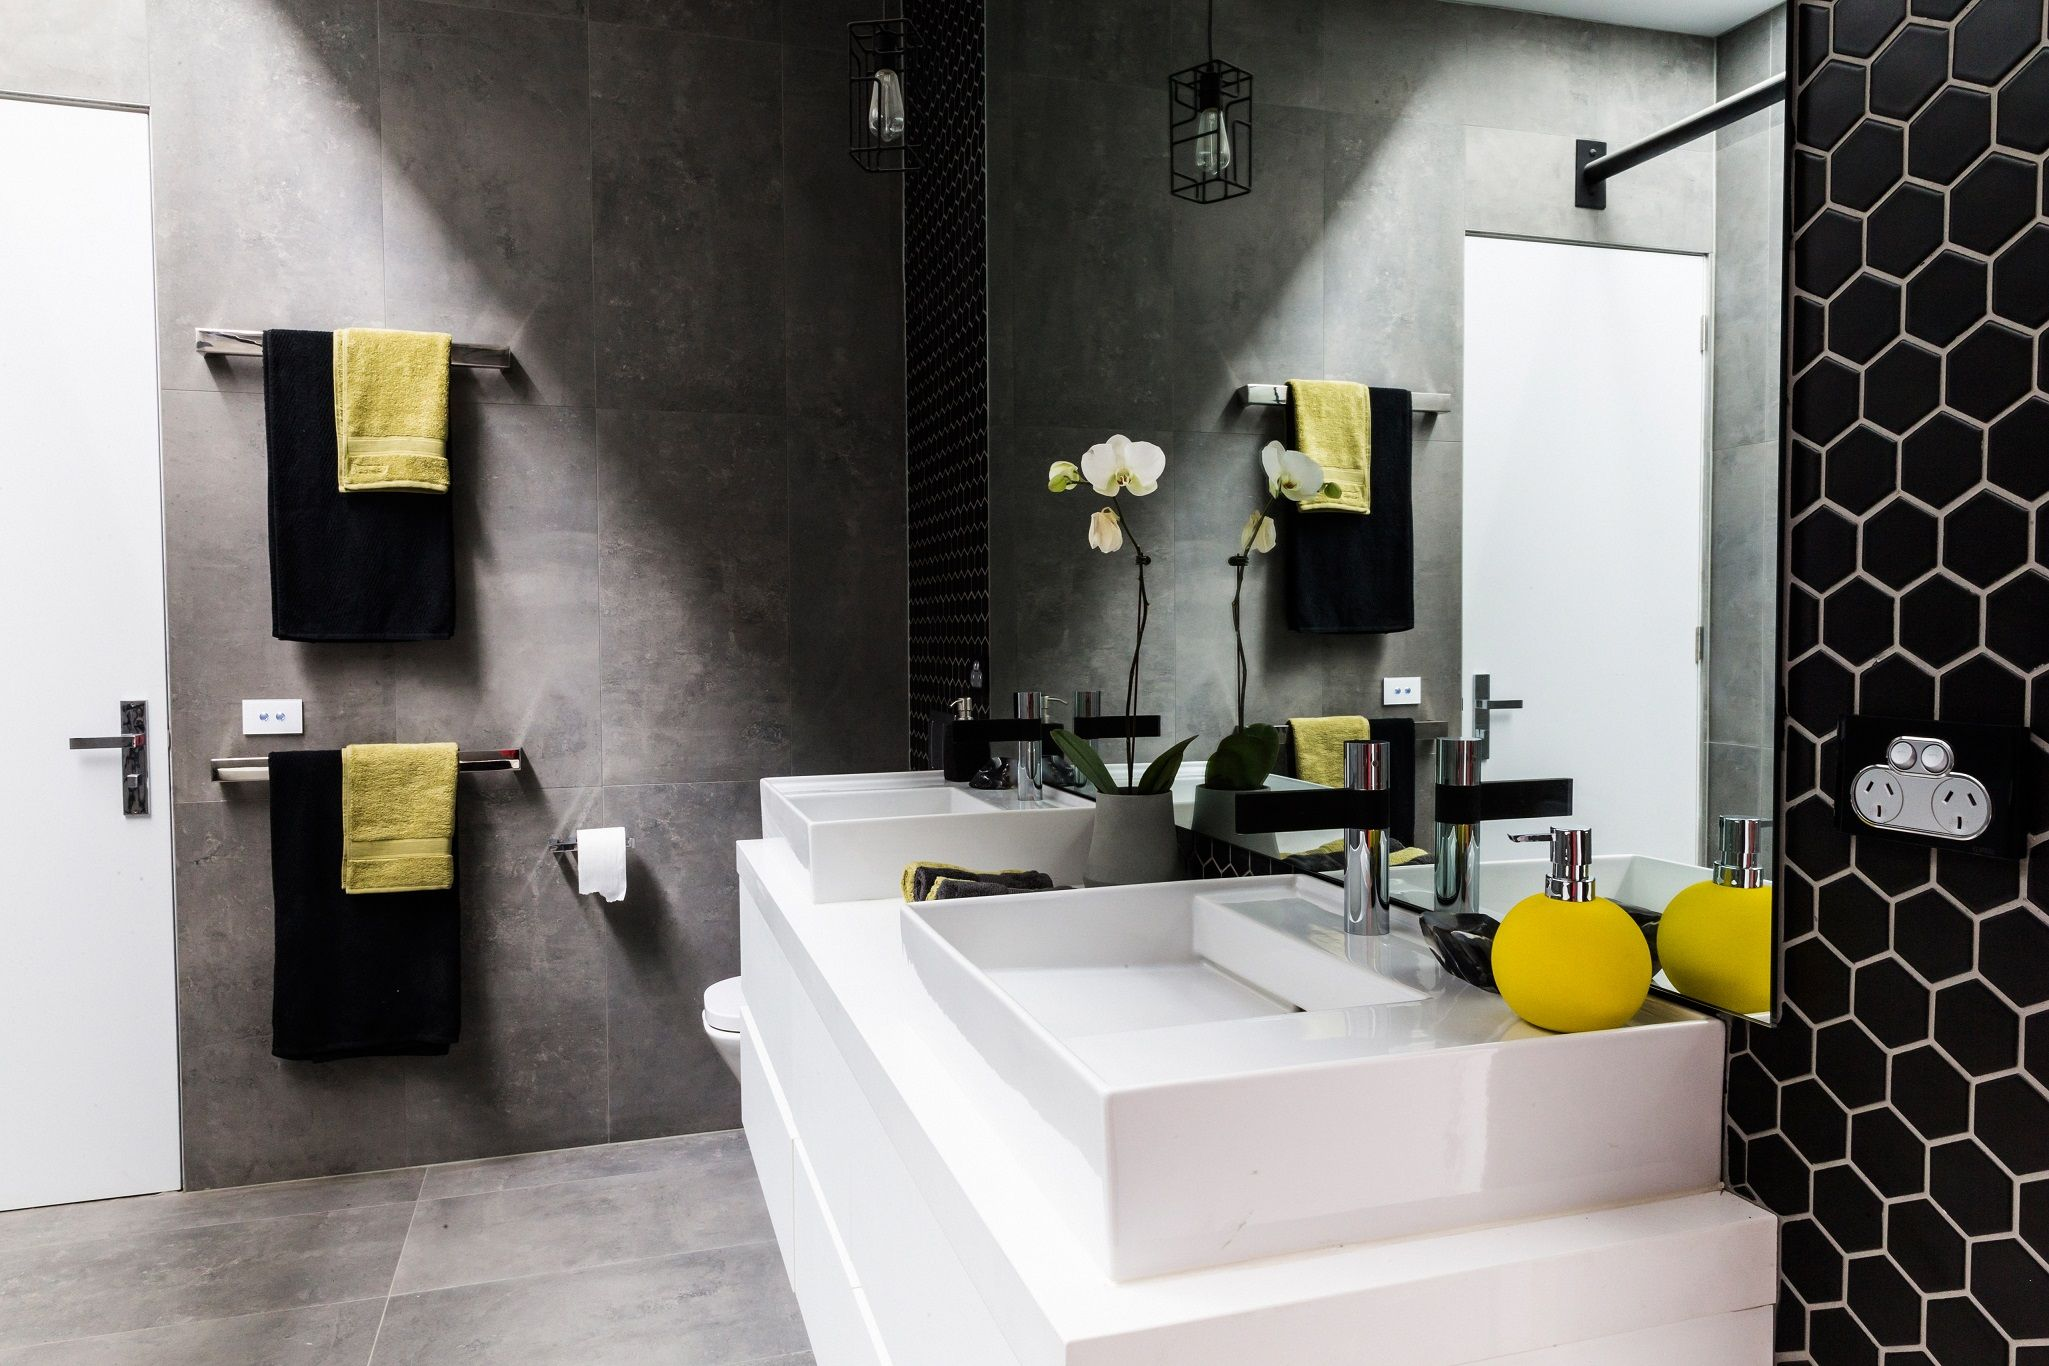 Bathroom Ideas The Block stunning bathroom design ideas as seen on the block glasshouse